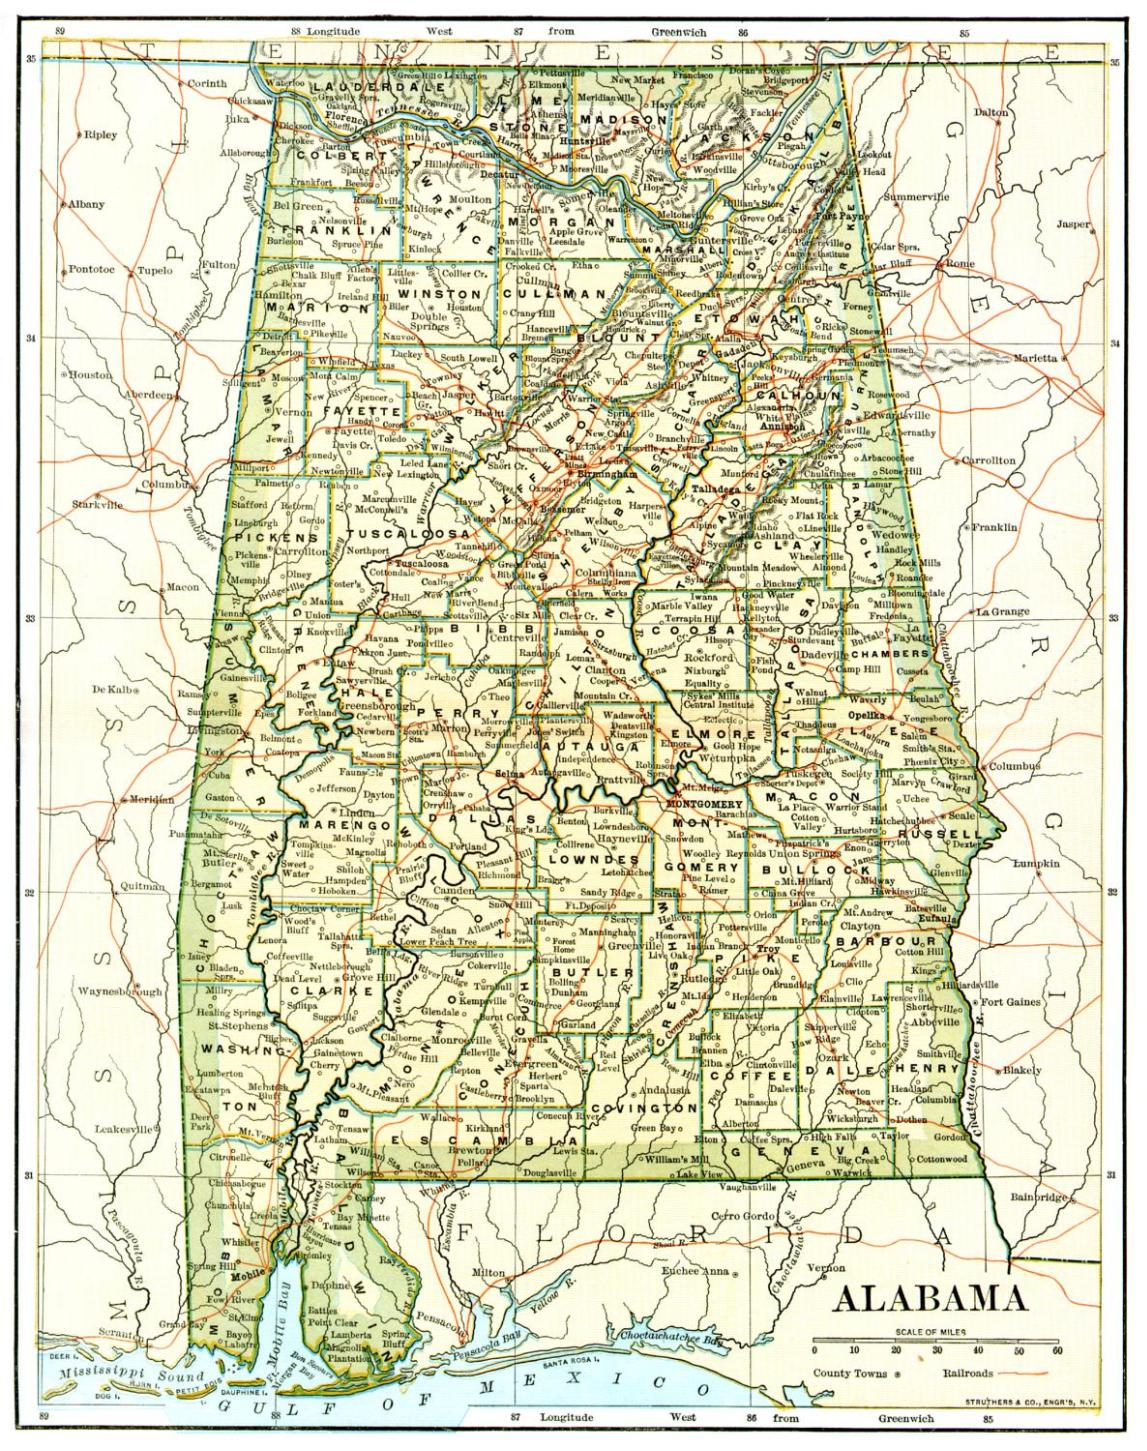 Alabama Maps. Alabama Digital Map Liry. Table of Contents ... on interstate highway map, interstate map of alabama showing, interstate highways in georgia, interstate map of montgomery alabama, cahaba river alabama, interstate 20 map alabama, mobile alabama, i-20 alabama,